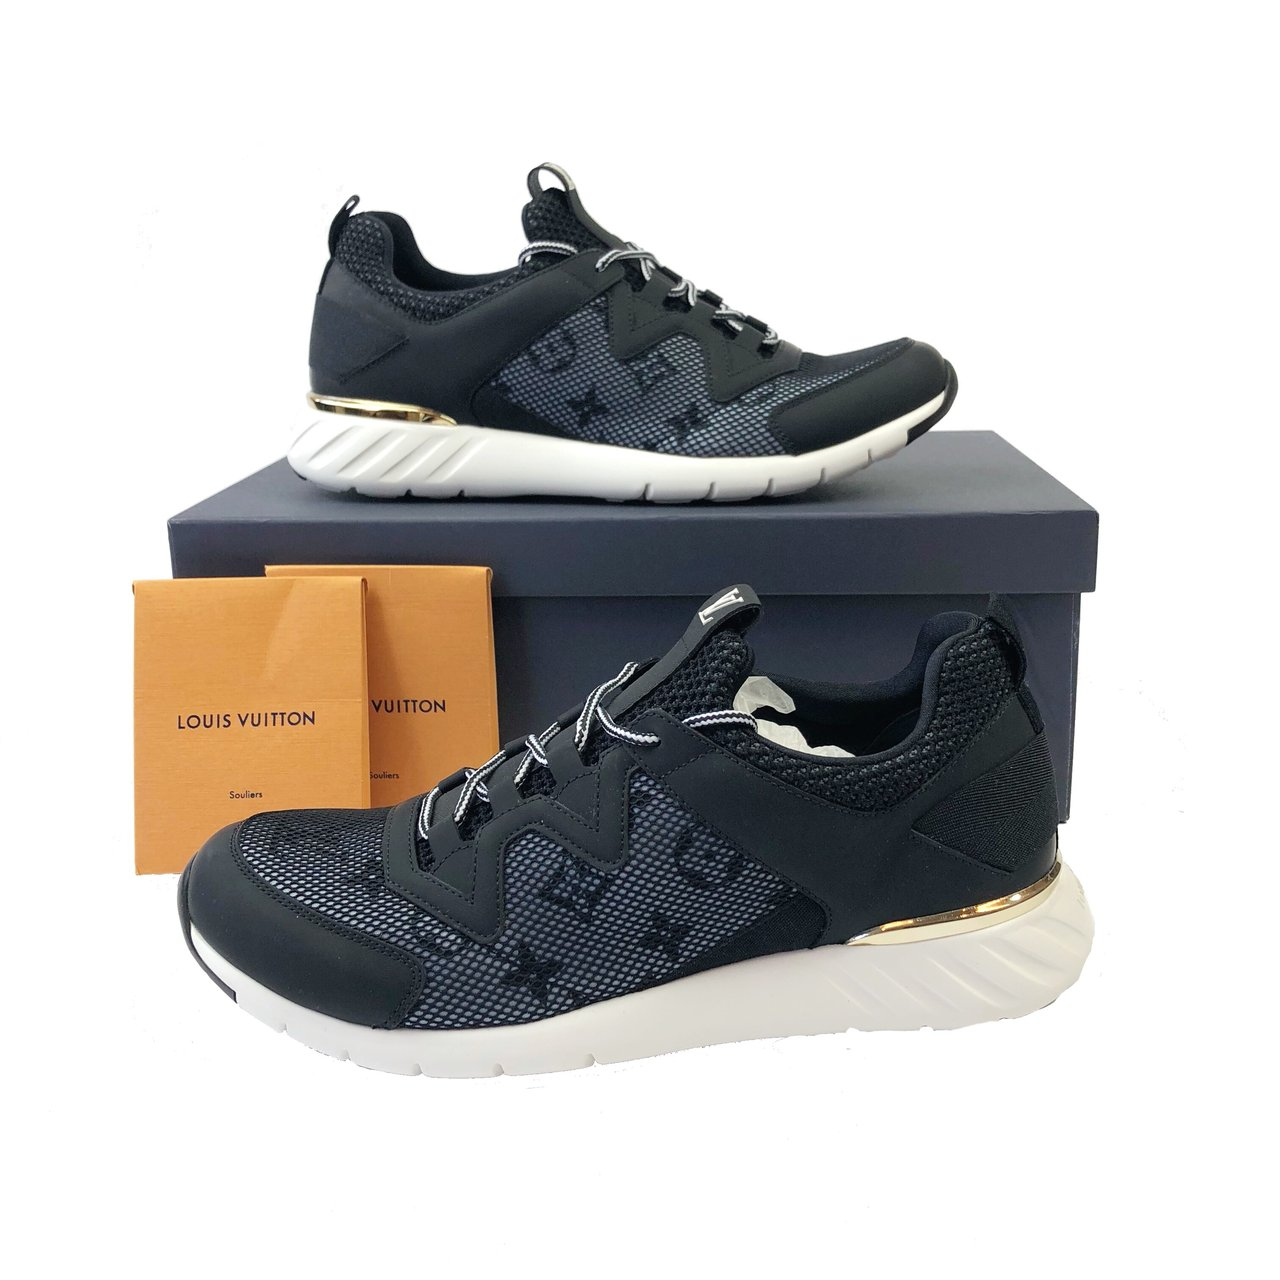 29be9c9853ed  oliversarchive. 4 months ago. United Kingdom. Authentic Louis Vuitton  Aftergame Sneakers